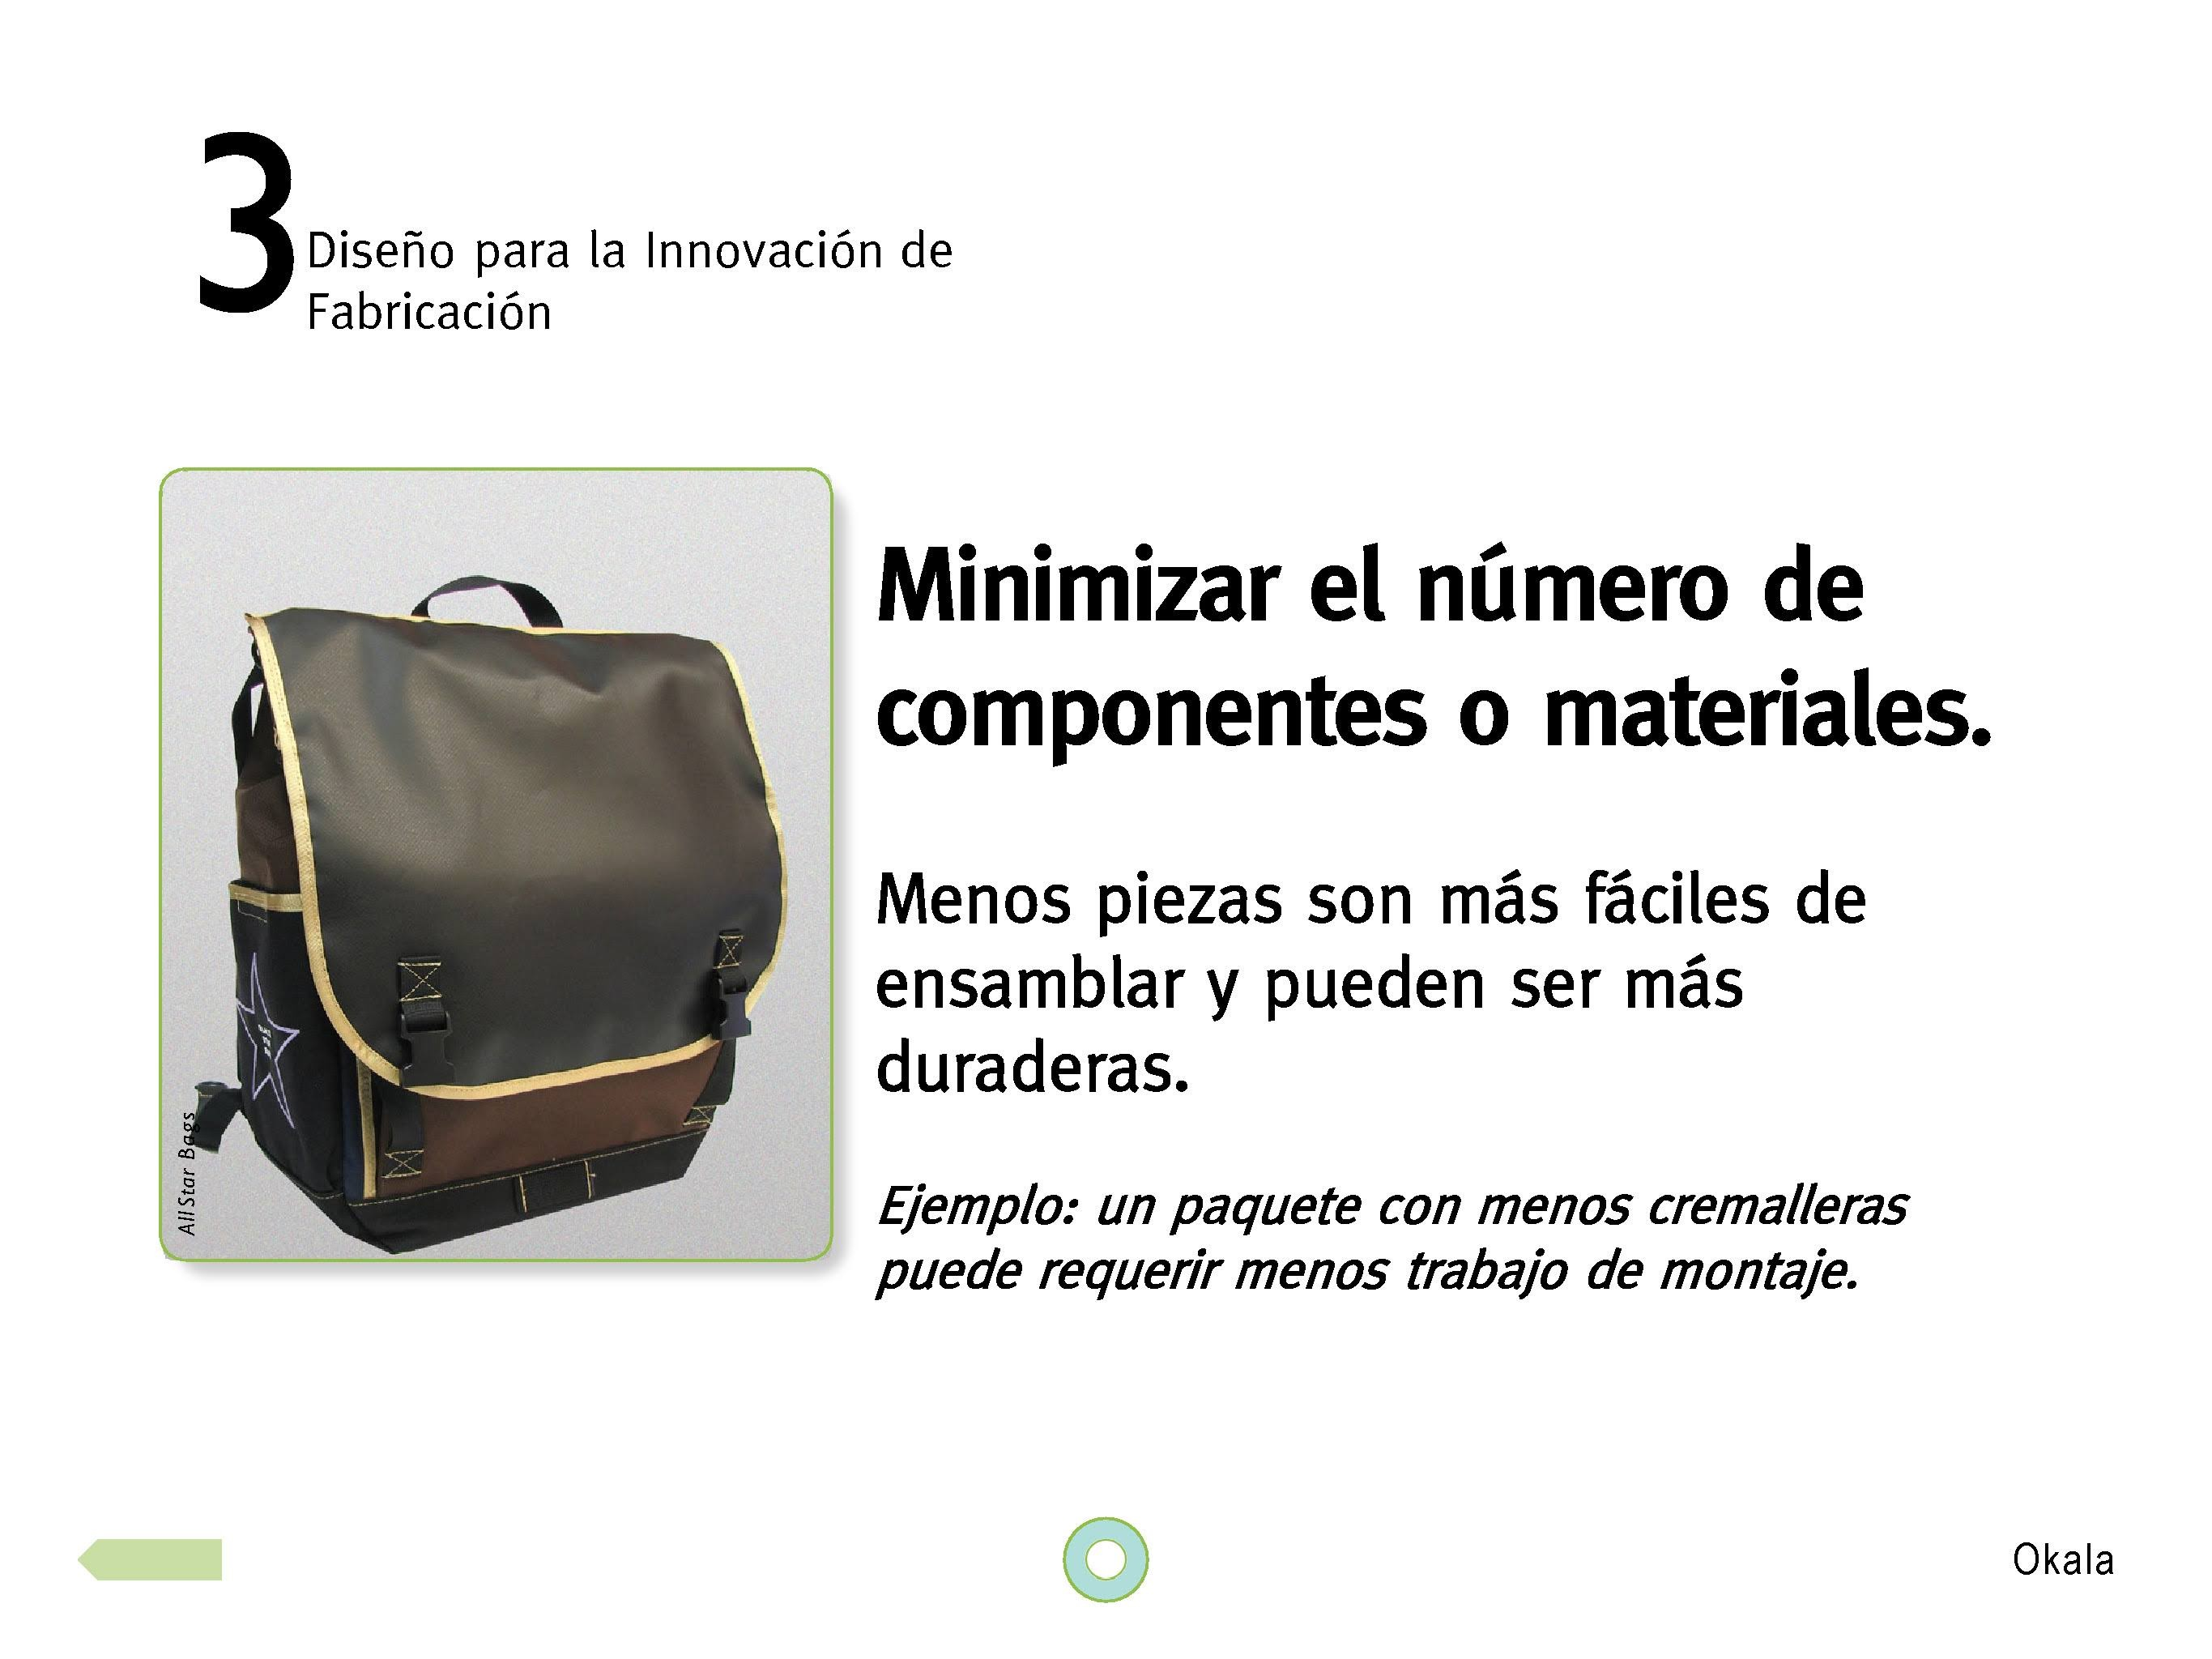 okala-ecodesign-strategy-guide-2012-spanish.new_page_21-1